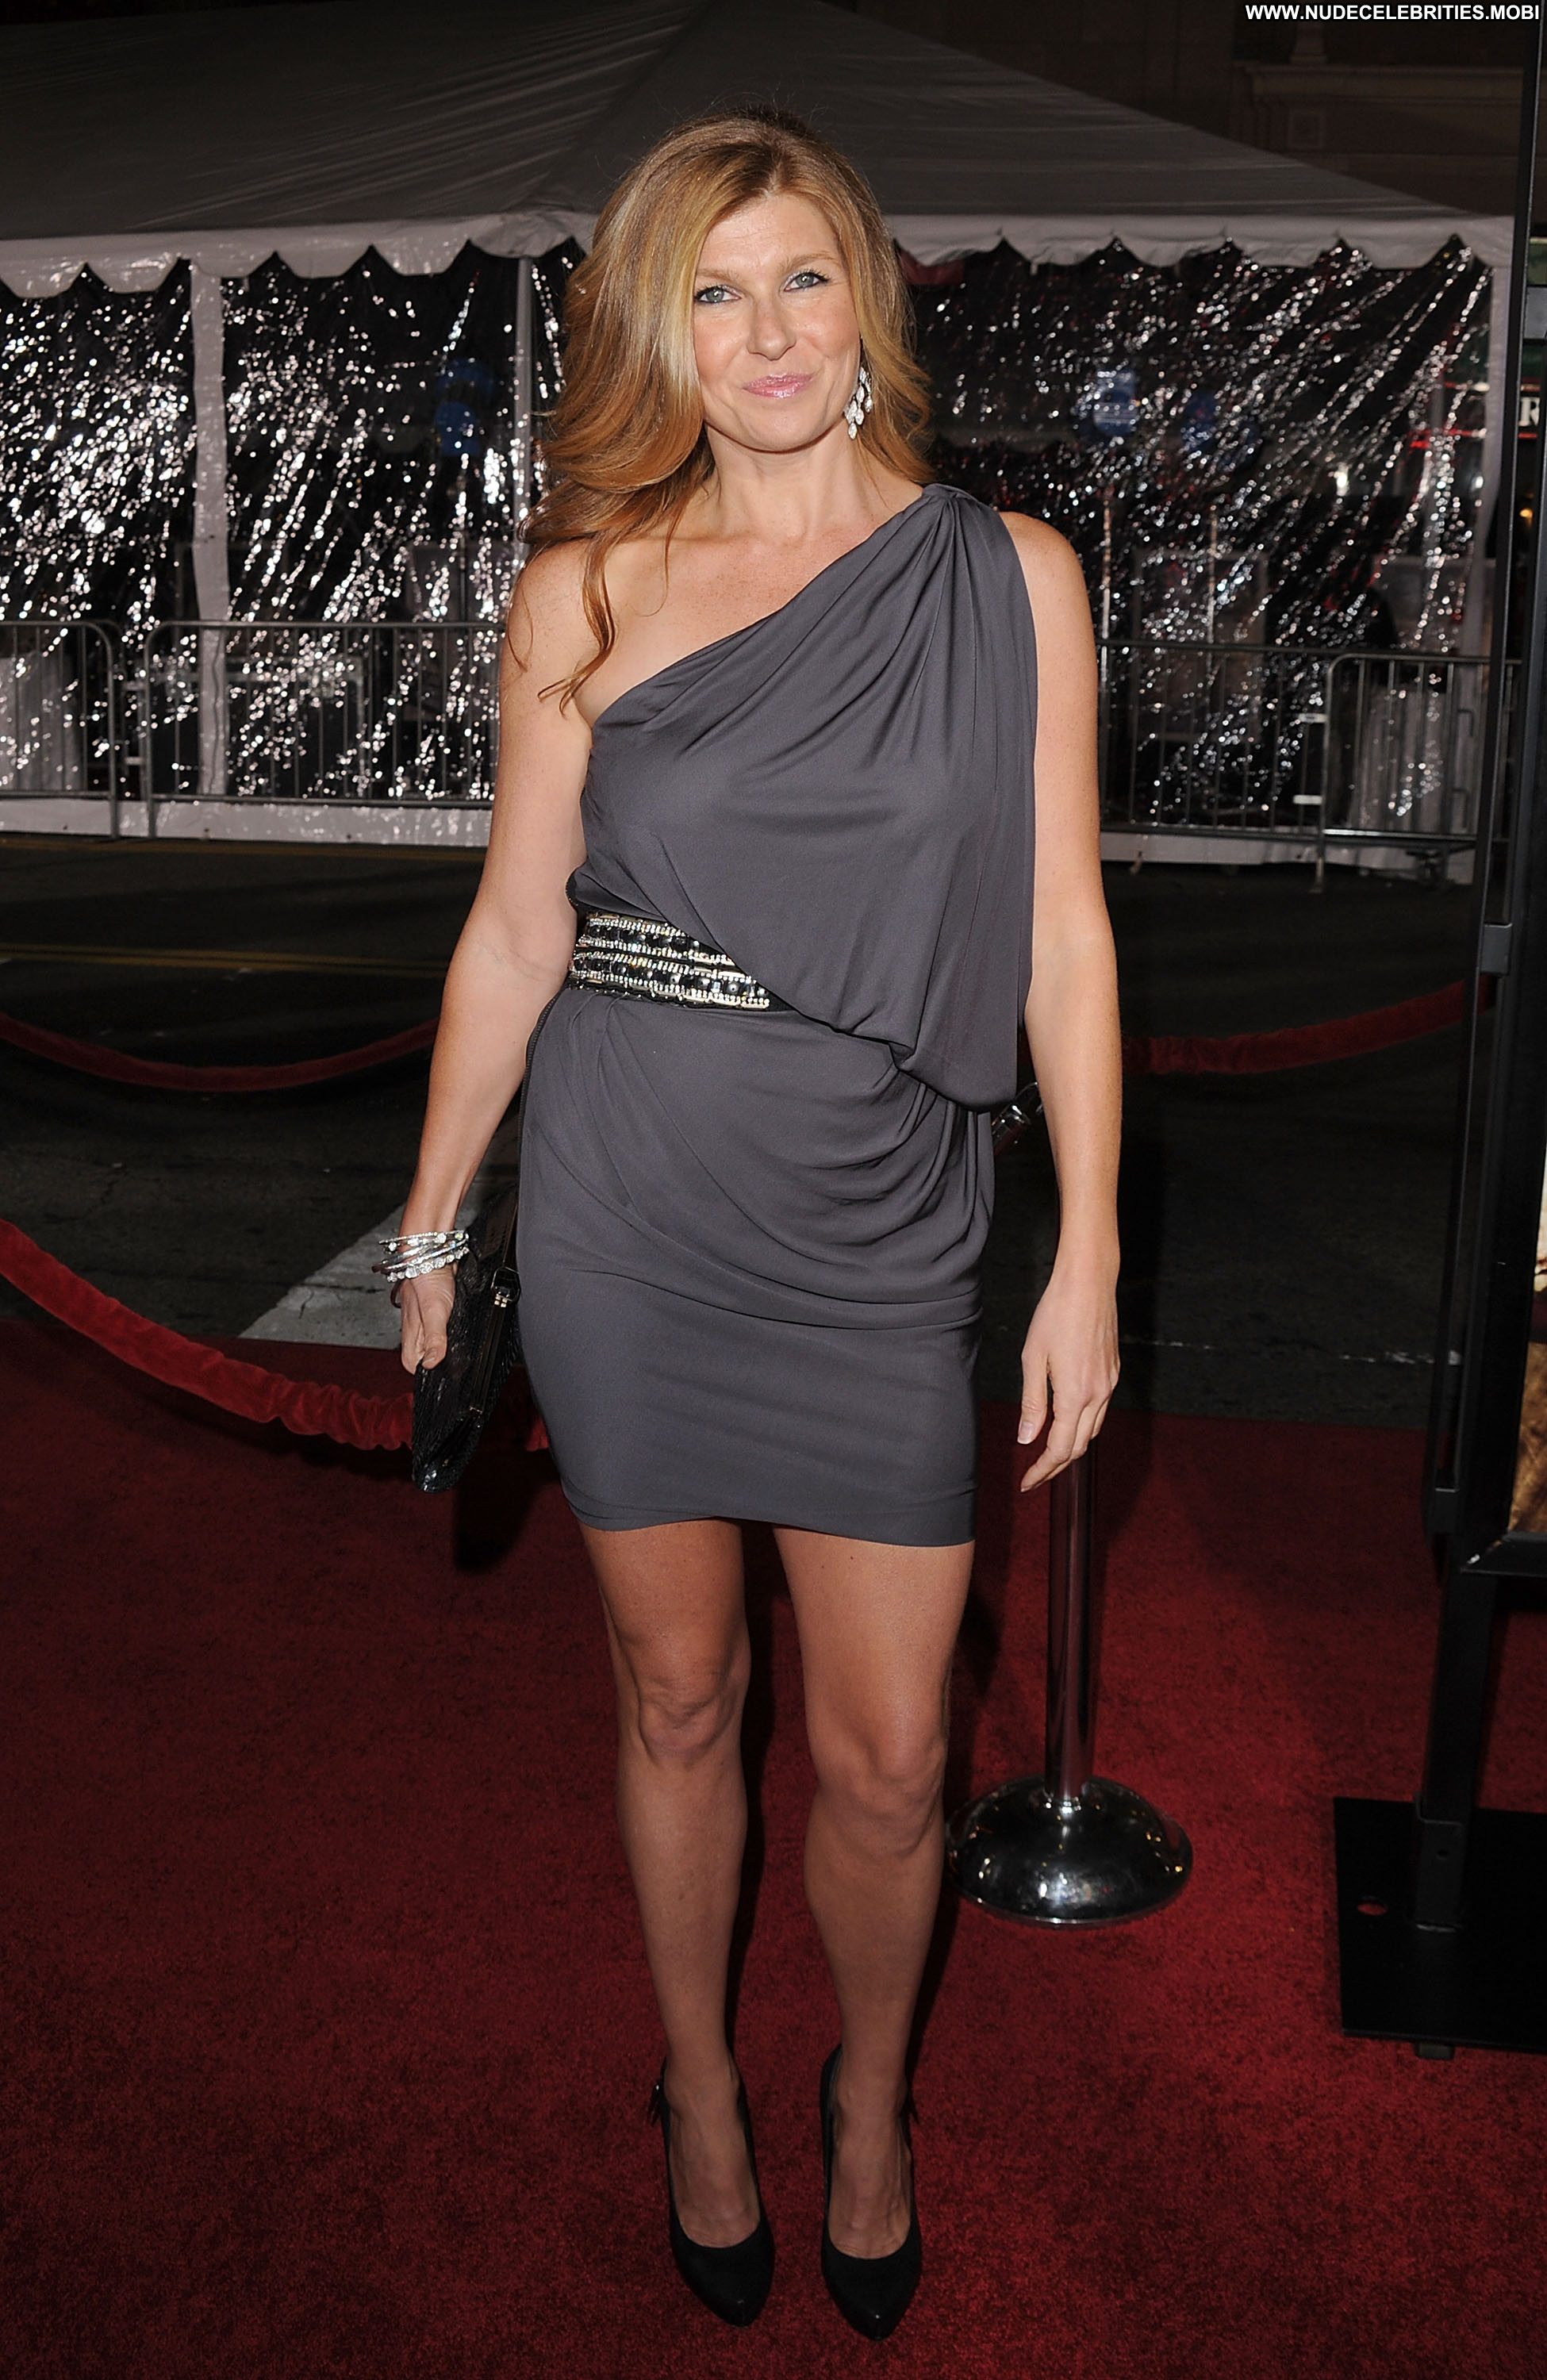 Connie Britton The Fighter The Fighter Celebrity Beautiful Babe Posing Hot High Resolution